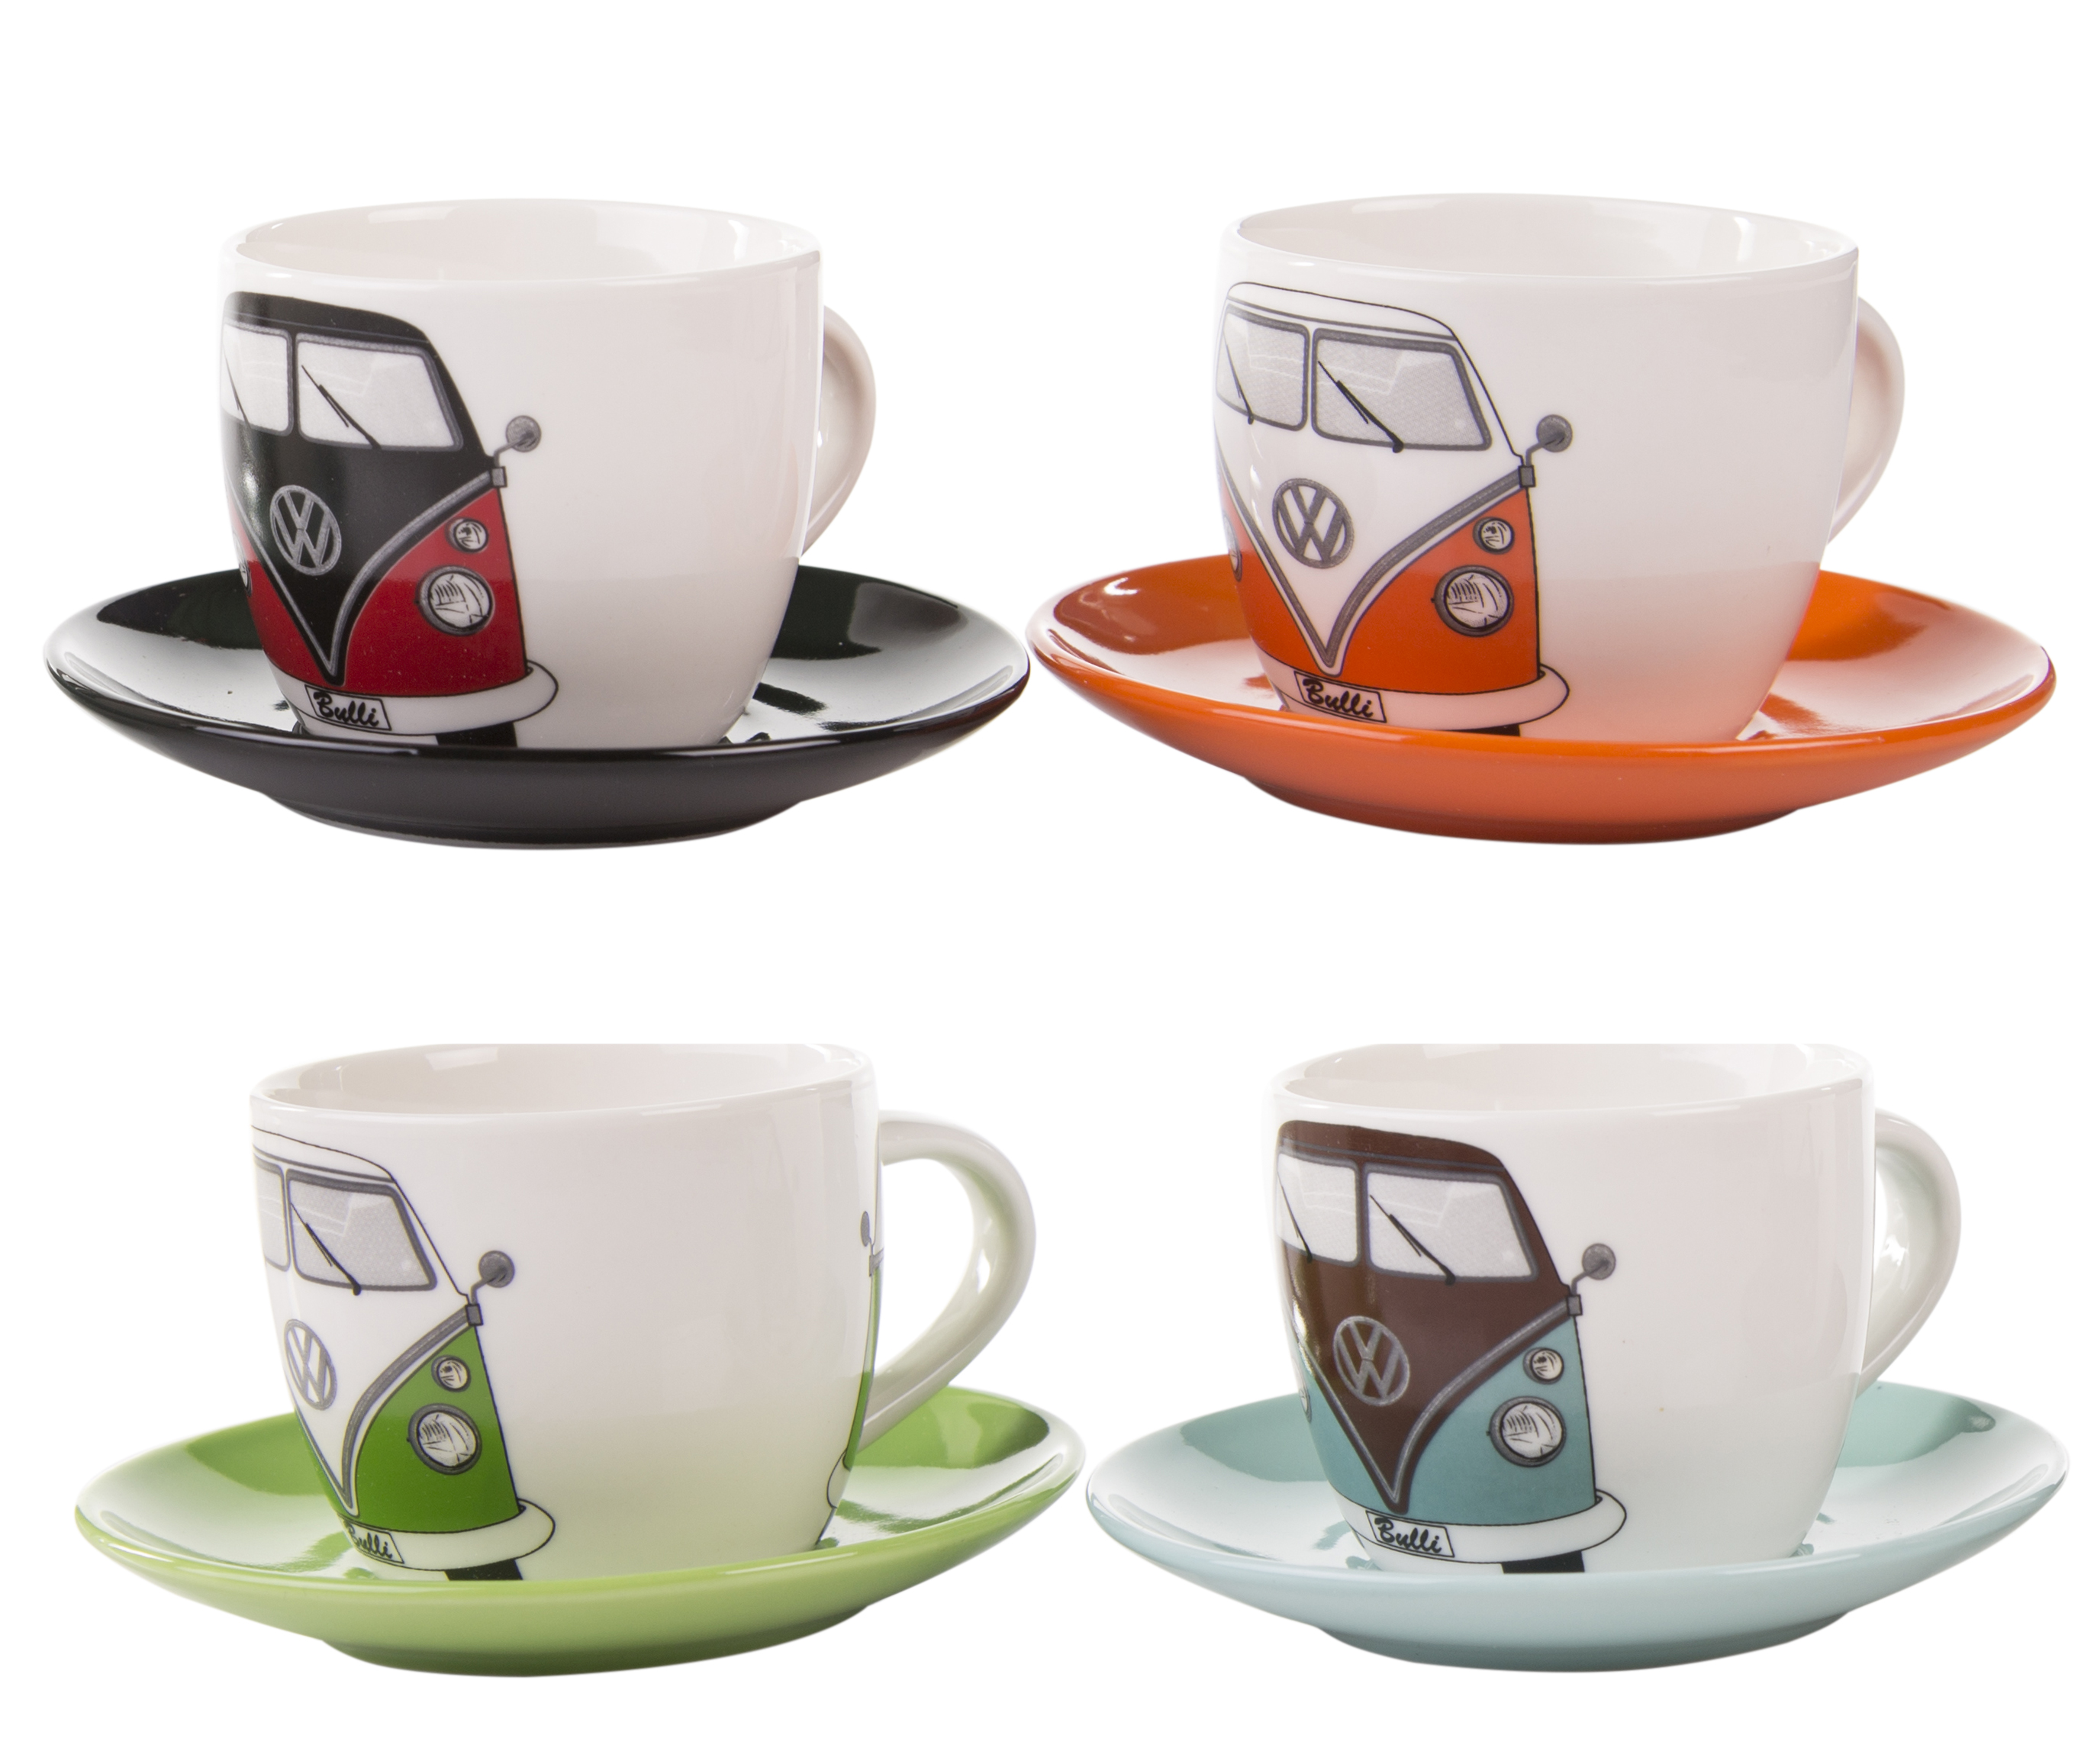 vw collection by brisa boxed set of  espresso cups - vw collection by brisa boxed set of  espresso cups  set of four cups andmatching saucers  made from new bone china  each measures cm diameter